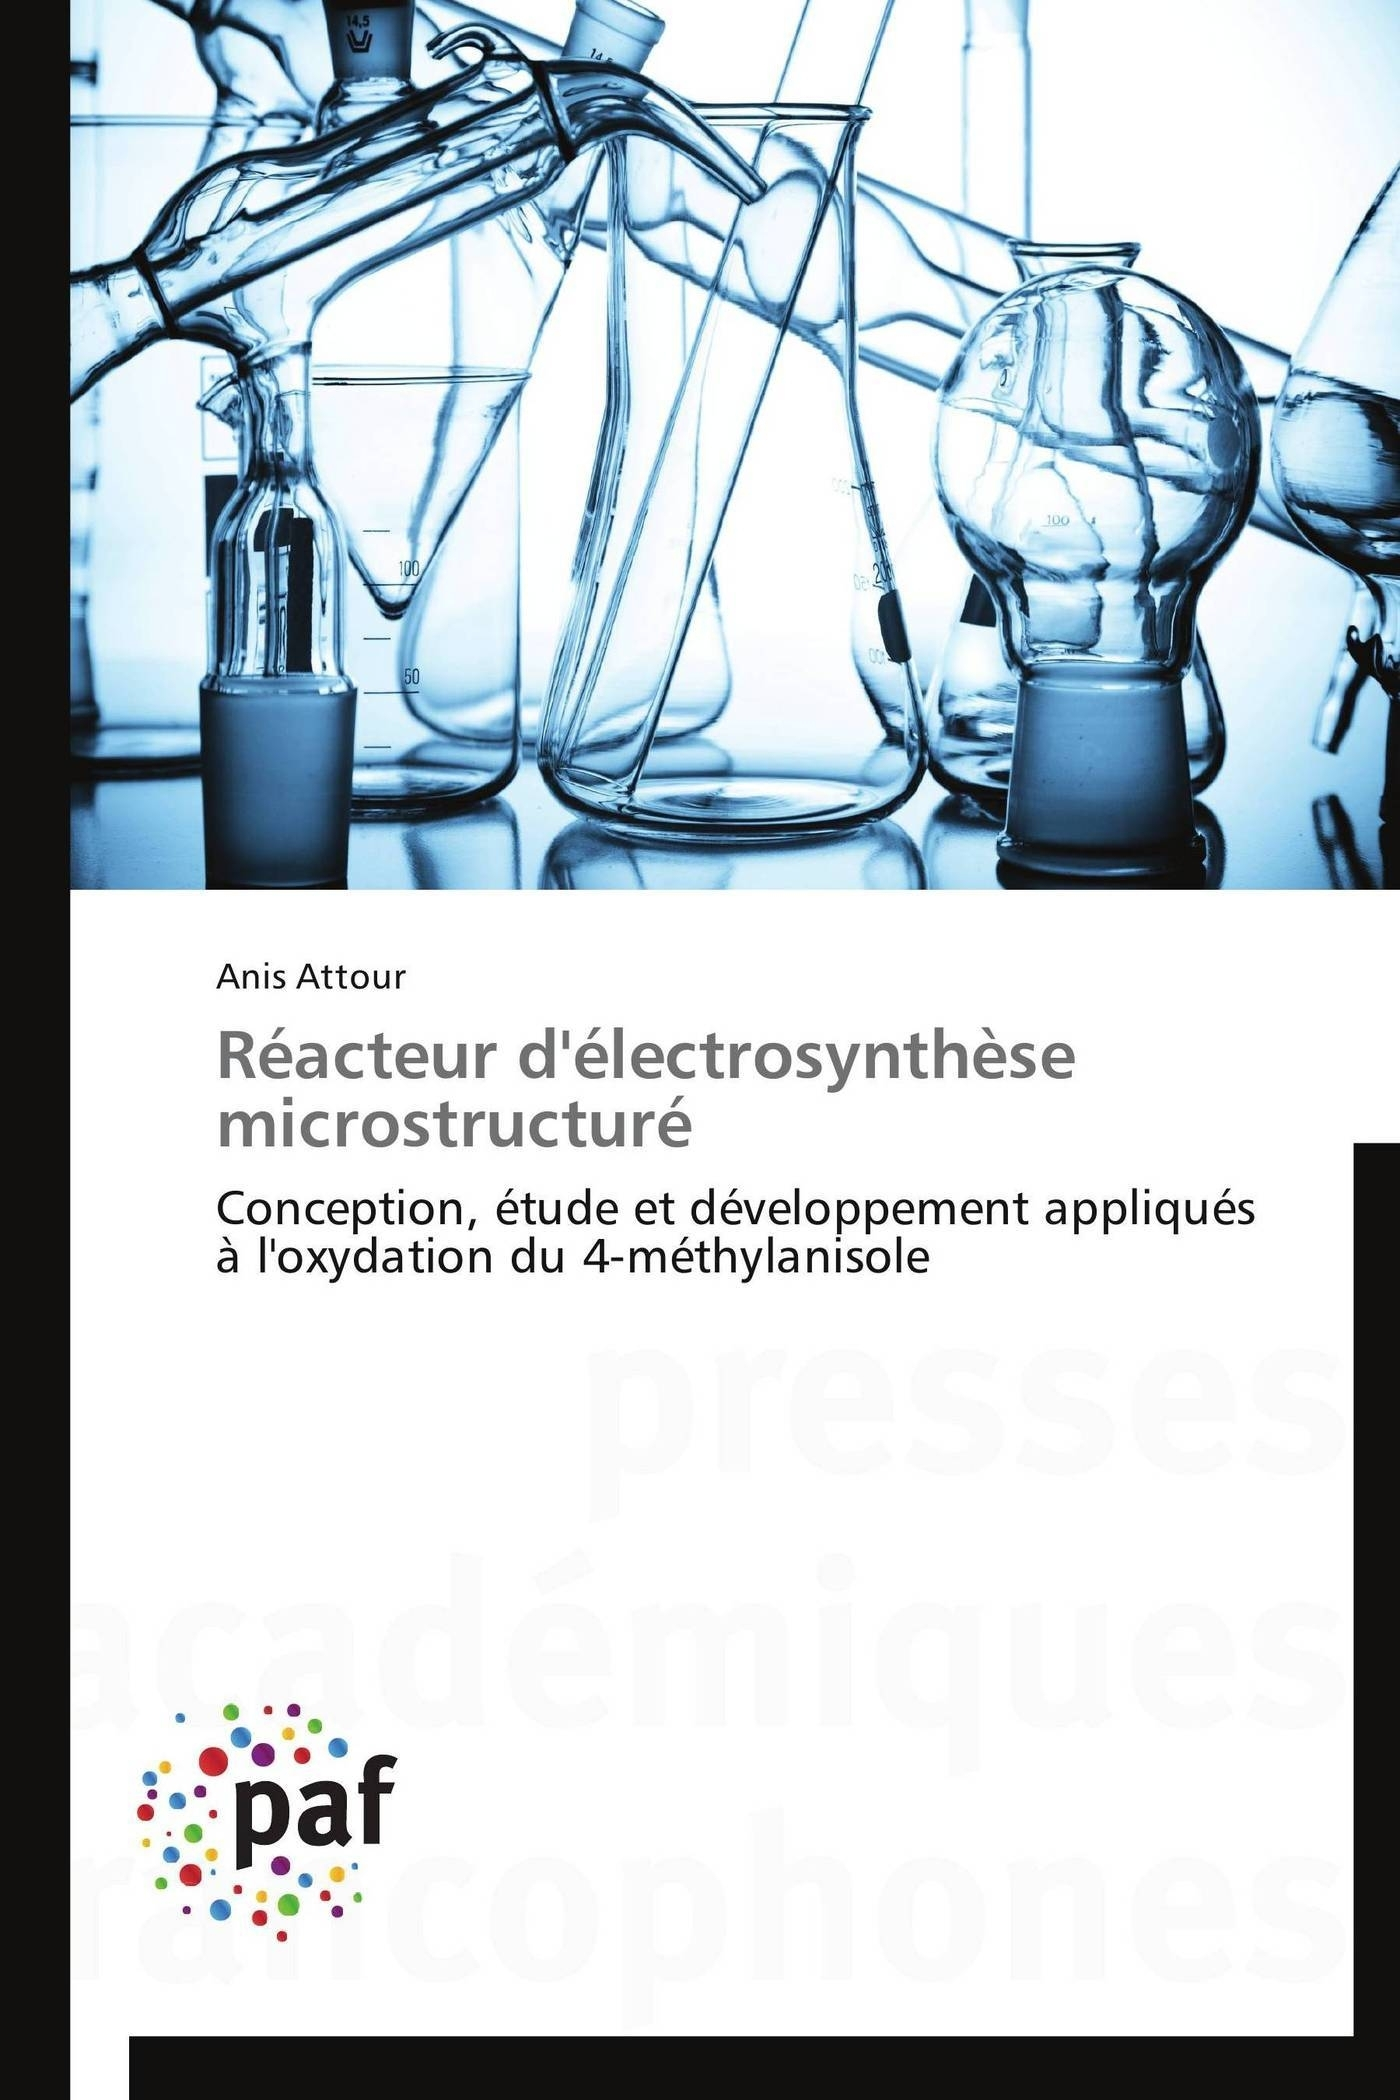 REACTEUR D'ELECTROSYNTHESE MICROSTRUCTURE